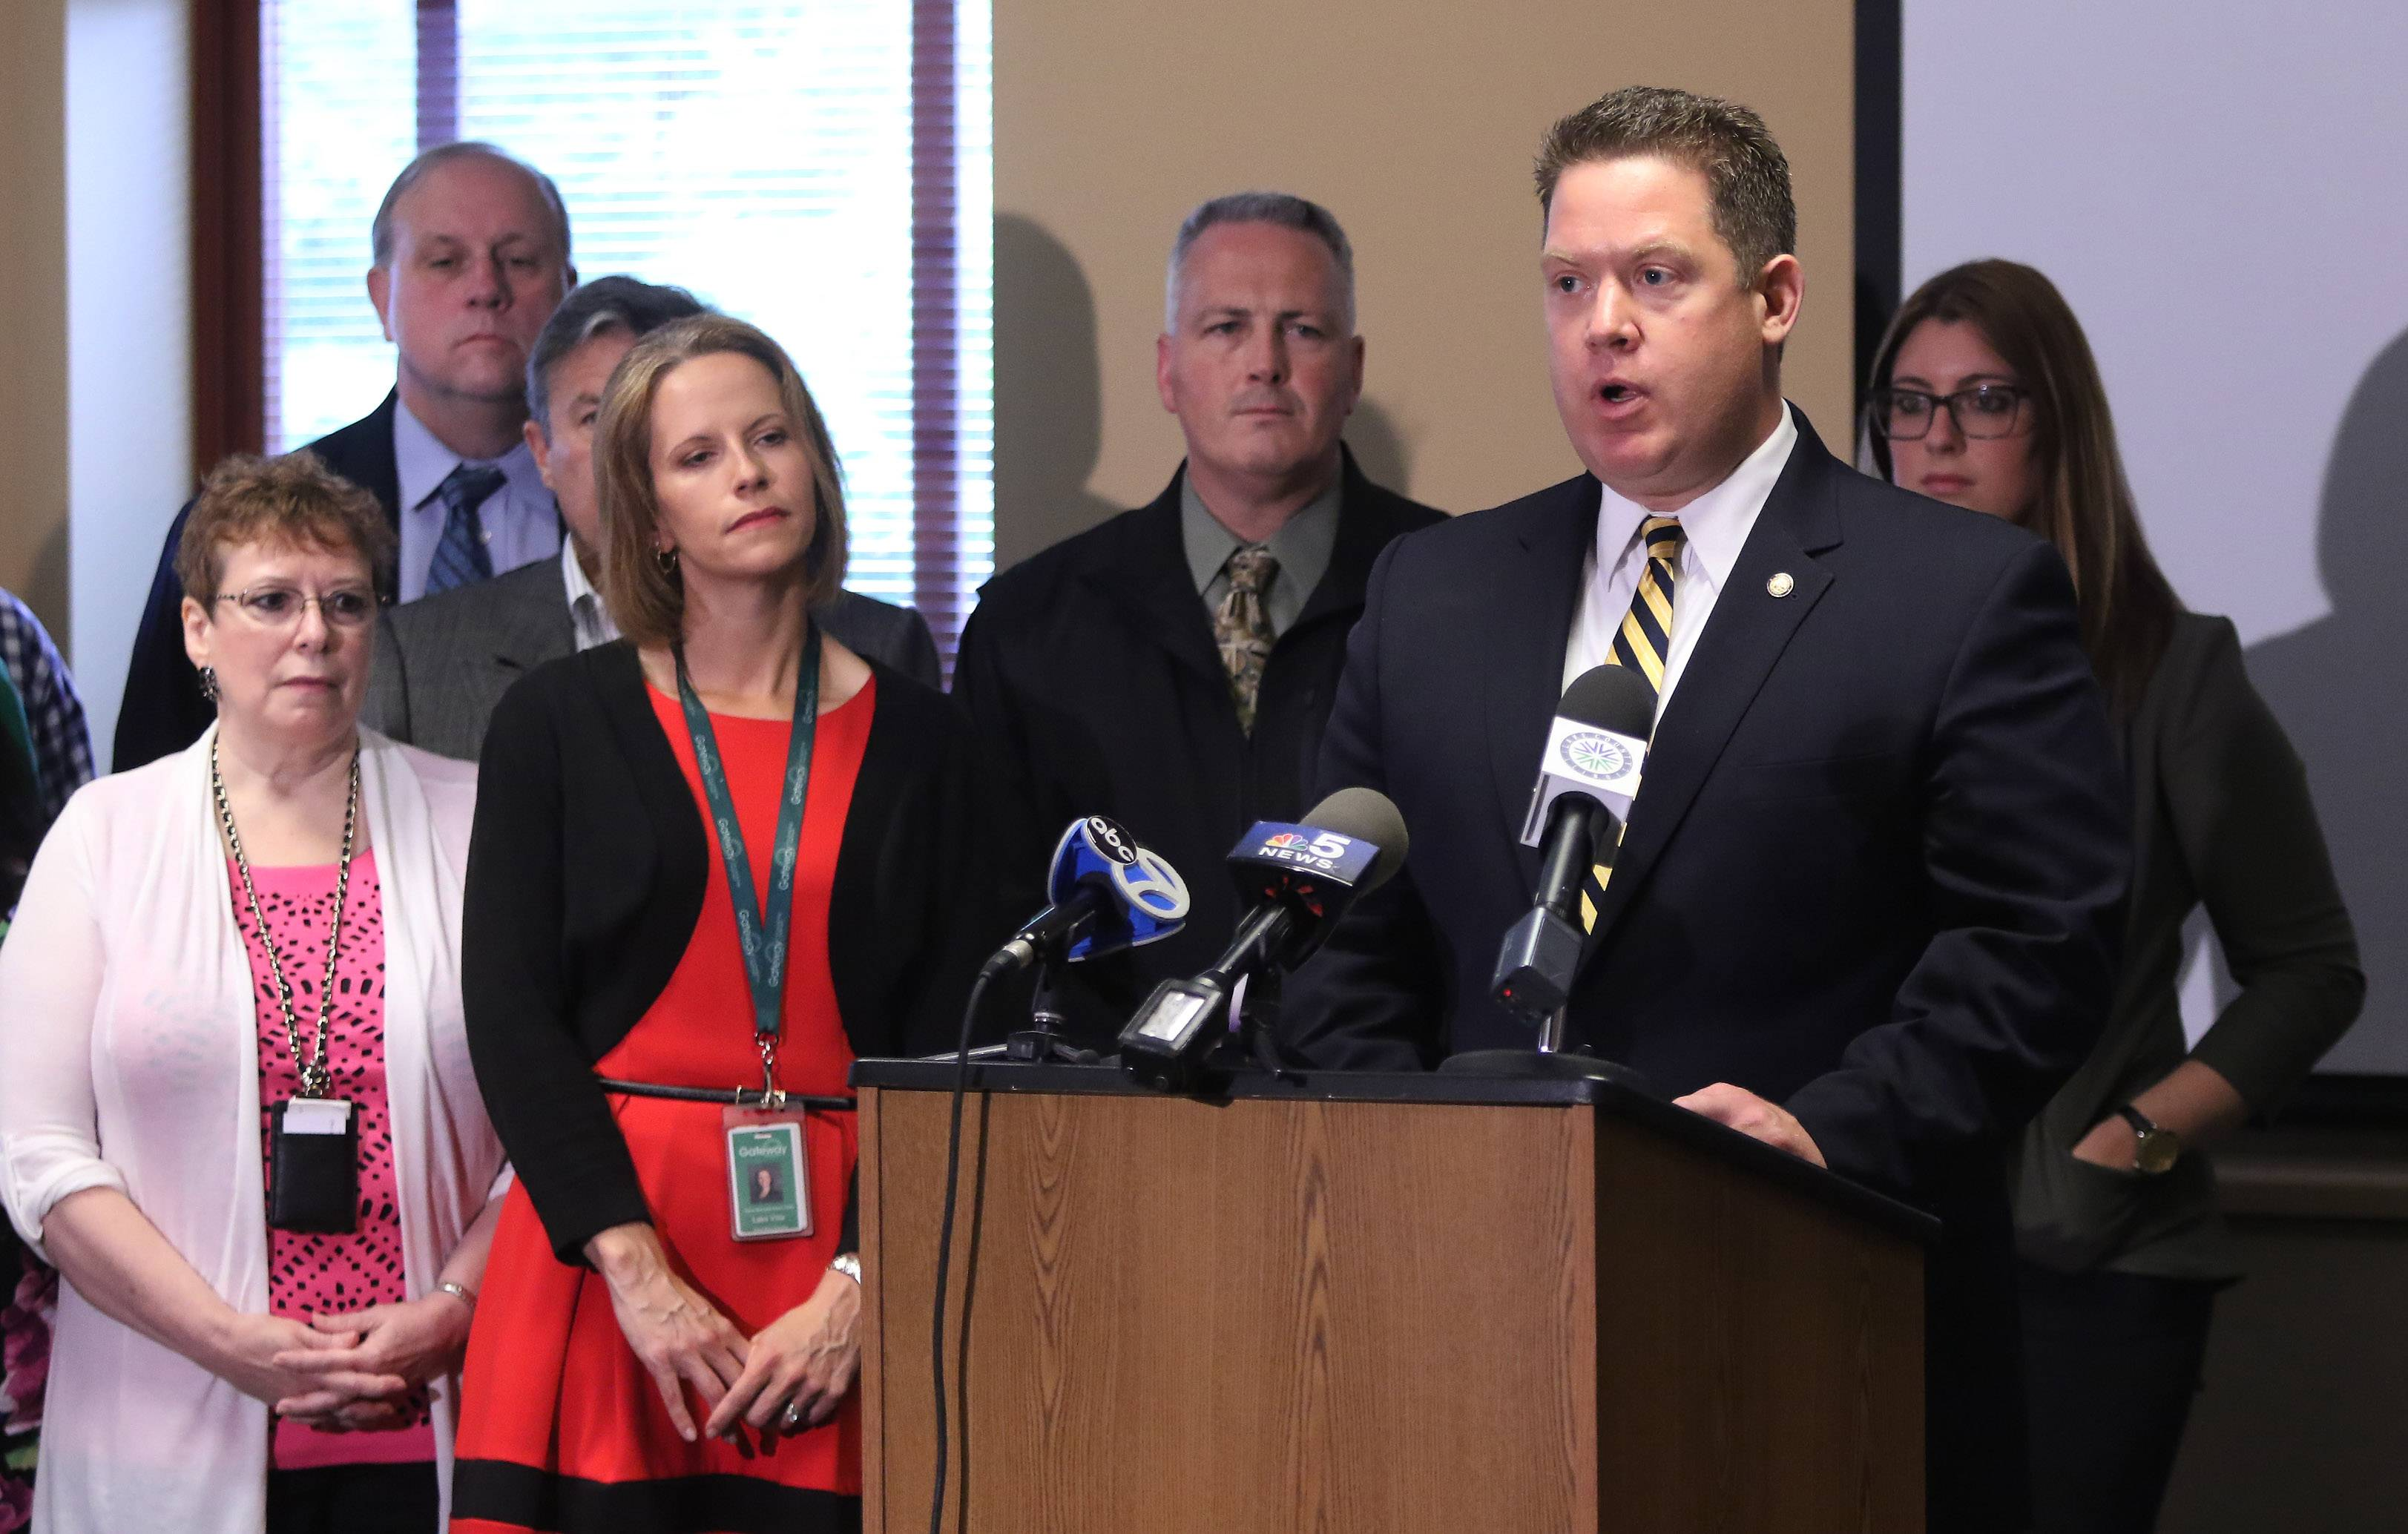 Lake County State's Attorney Michael Nerheim was at a news conference Wednesday in Gurnee to announce a program that will allow drug addicts to seek treatment without risk of arrest if they go to a participating police department.